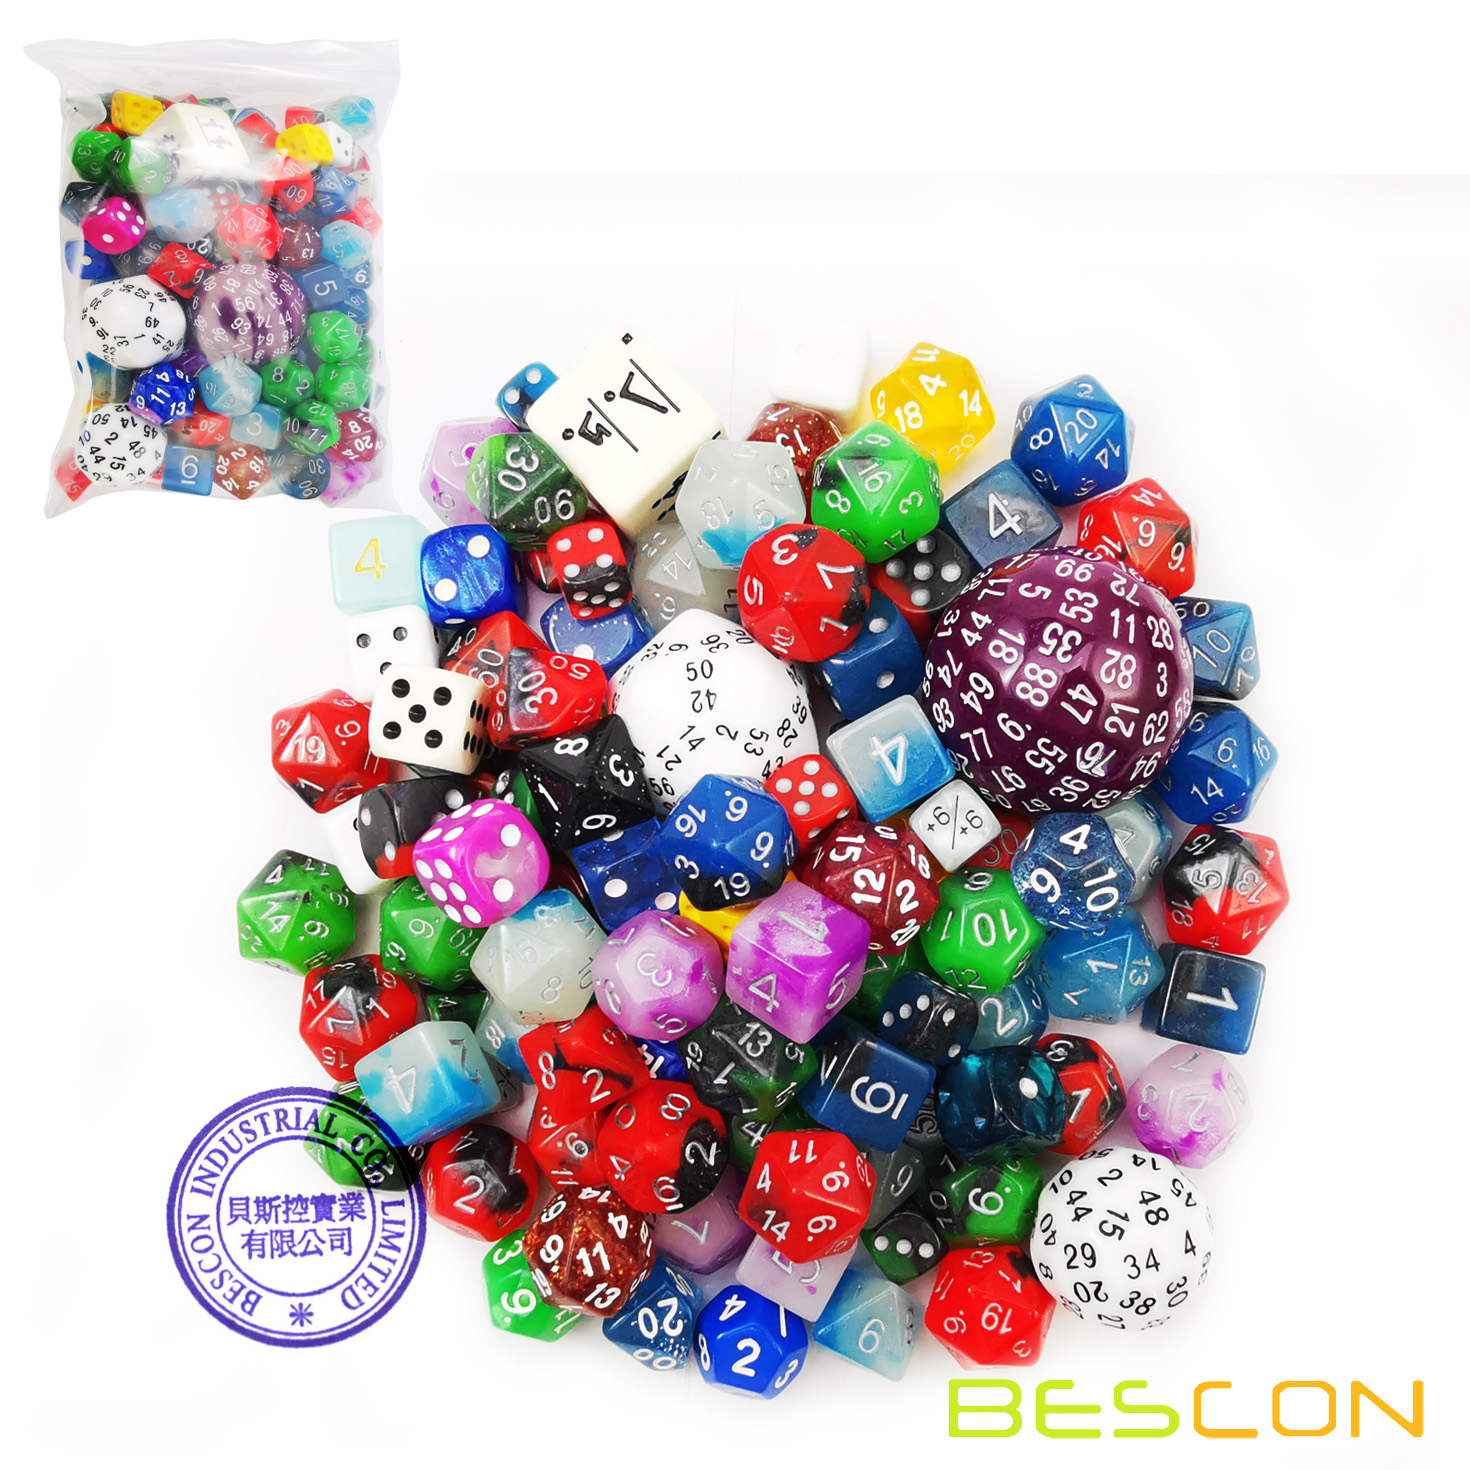 Bescon Big Better Rejects Dice Pack 100+, Second Dice Set 100pcs